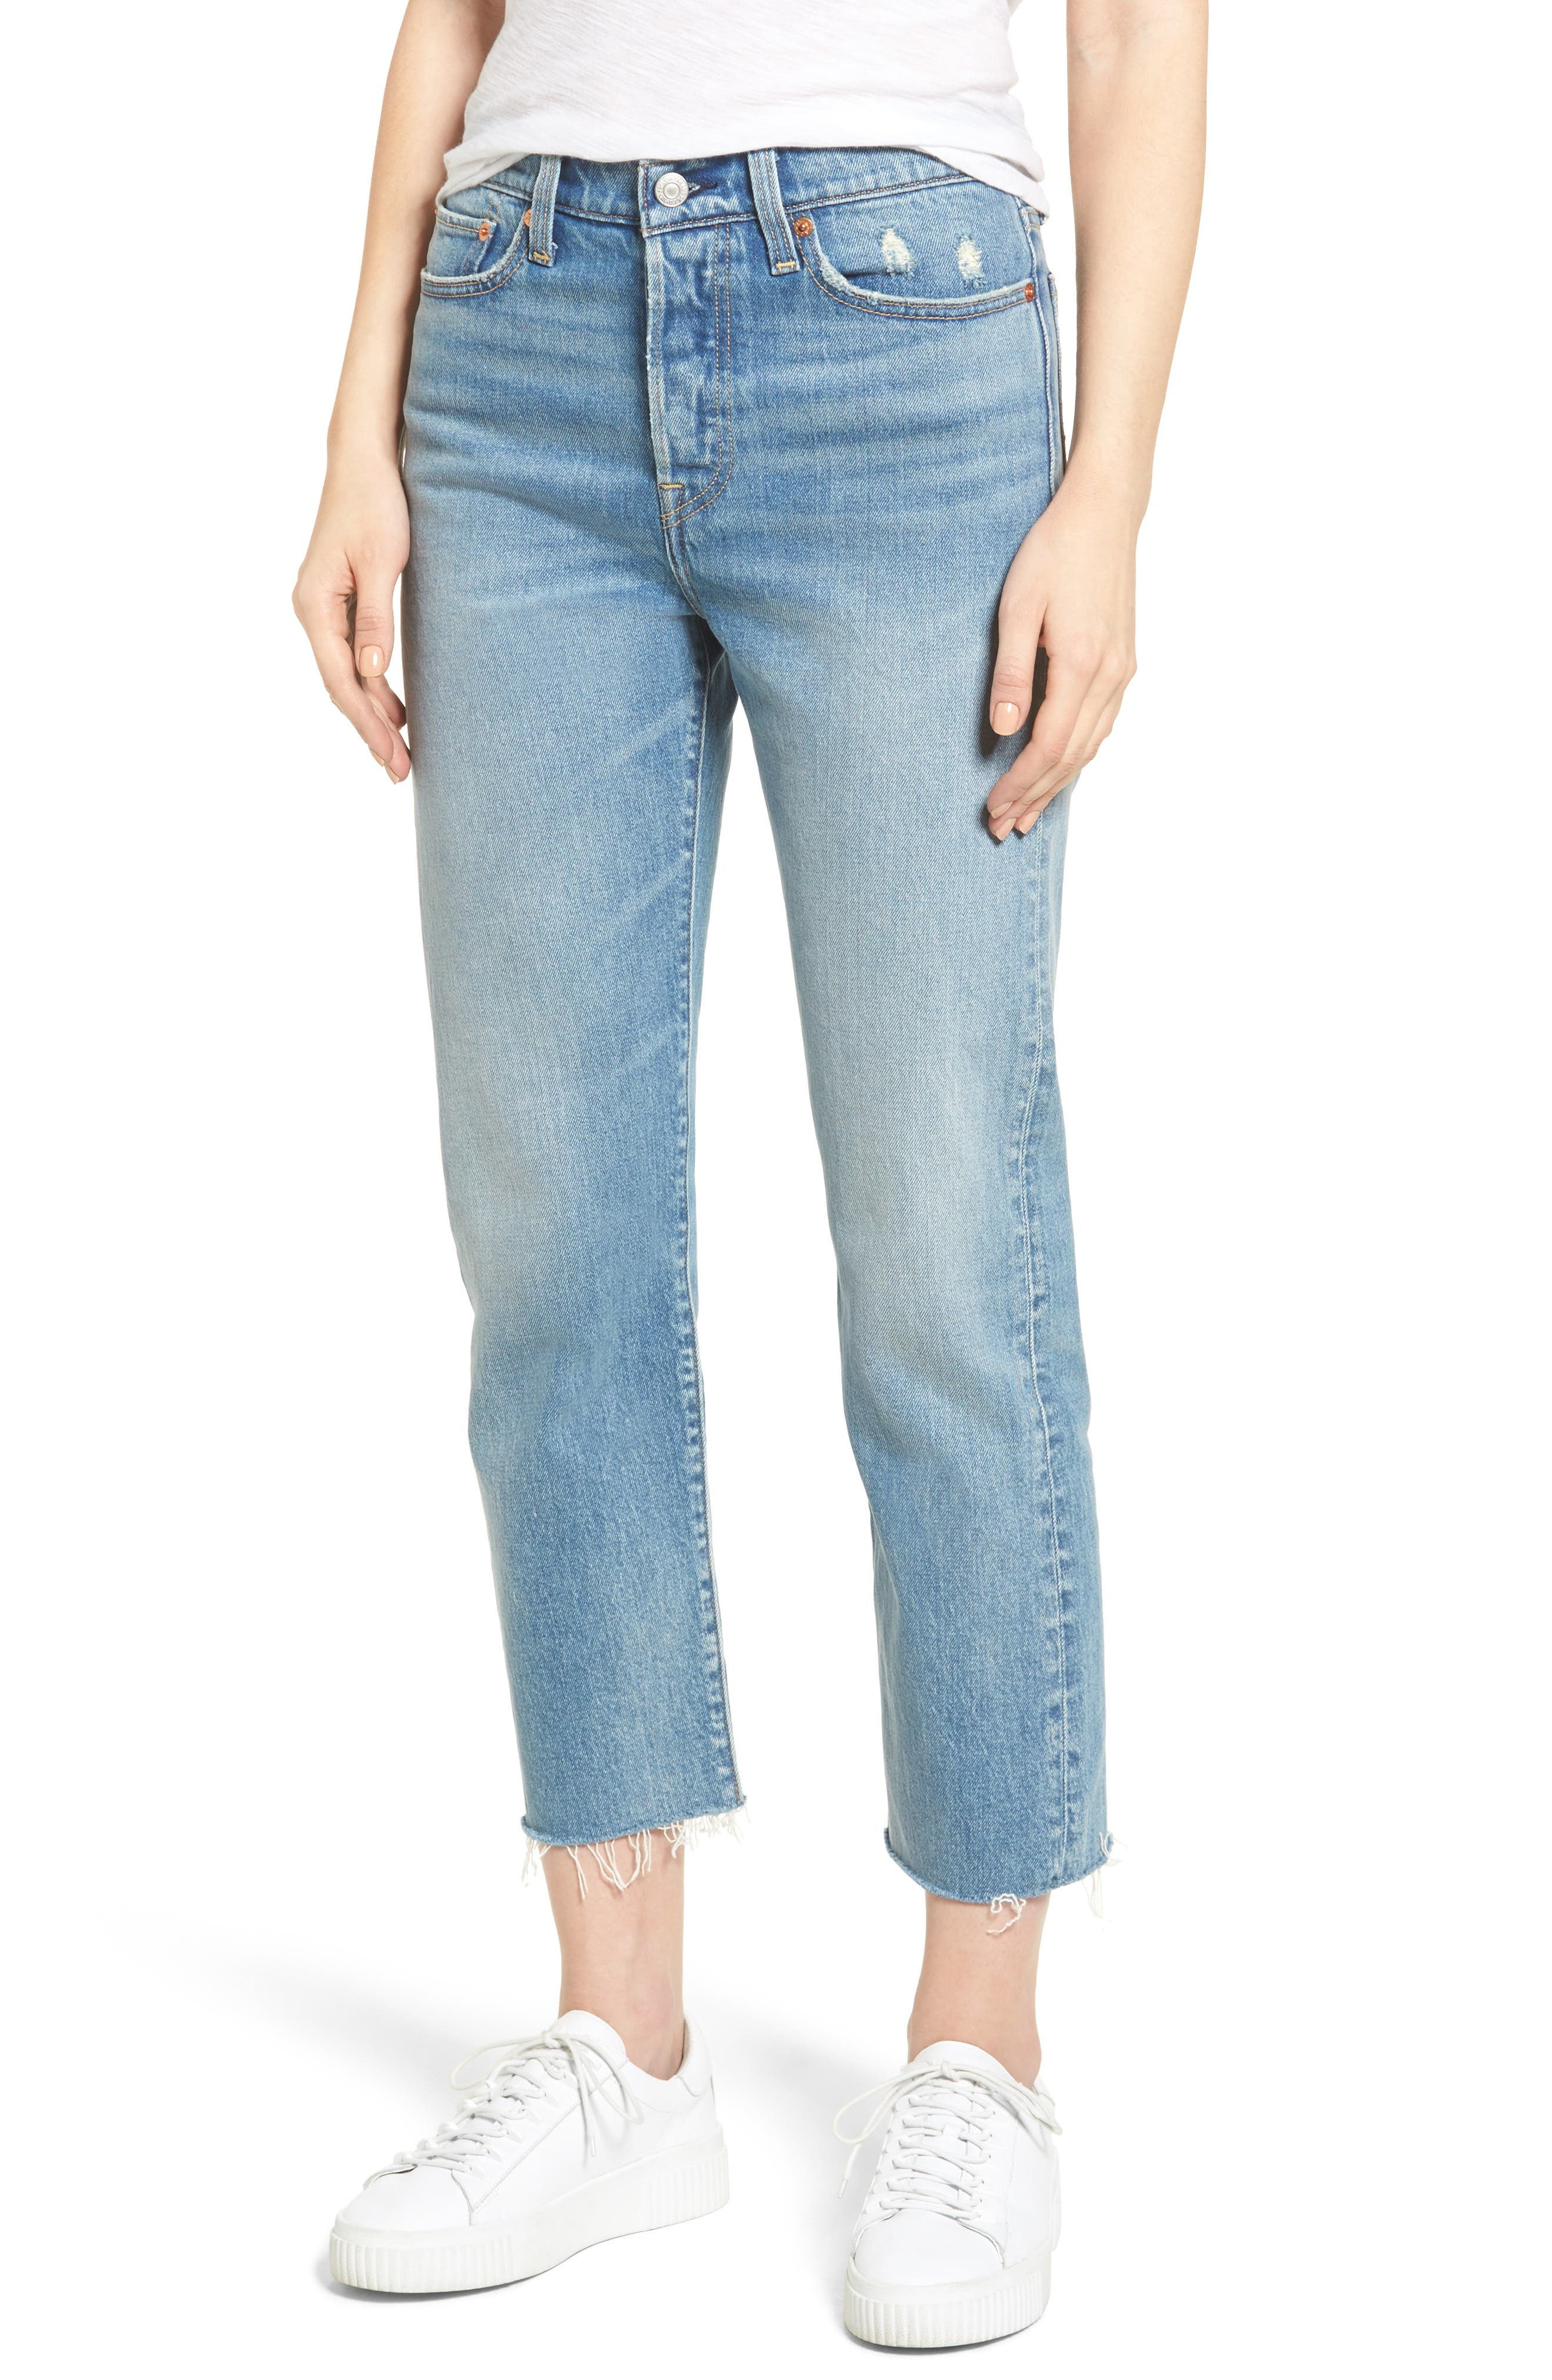 Alternate Image 1 Selected - Levi's® Wedgie Straight Leg Crop Jeans (Rough Tide)